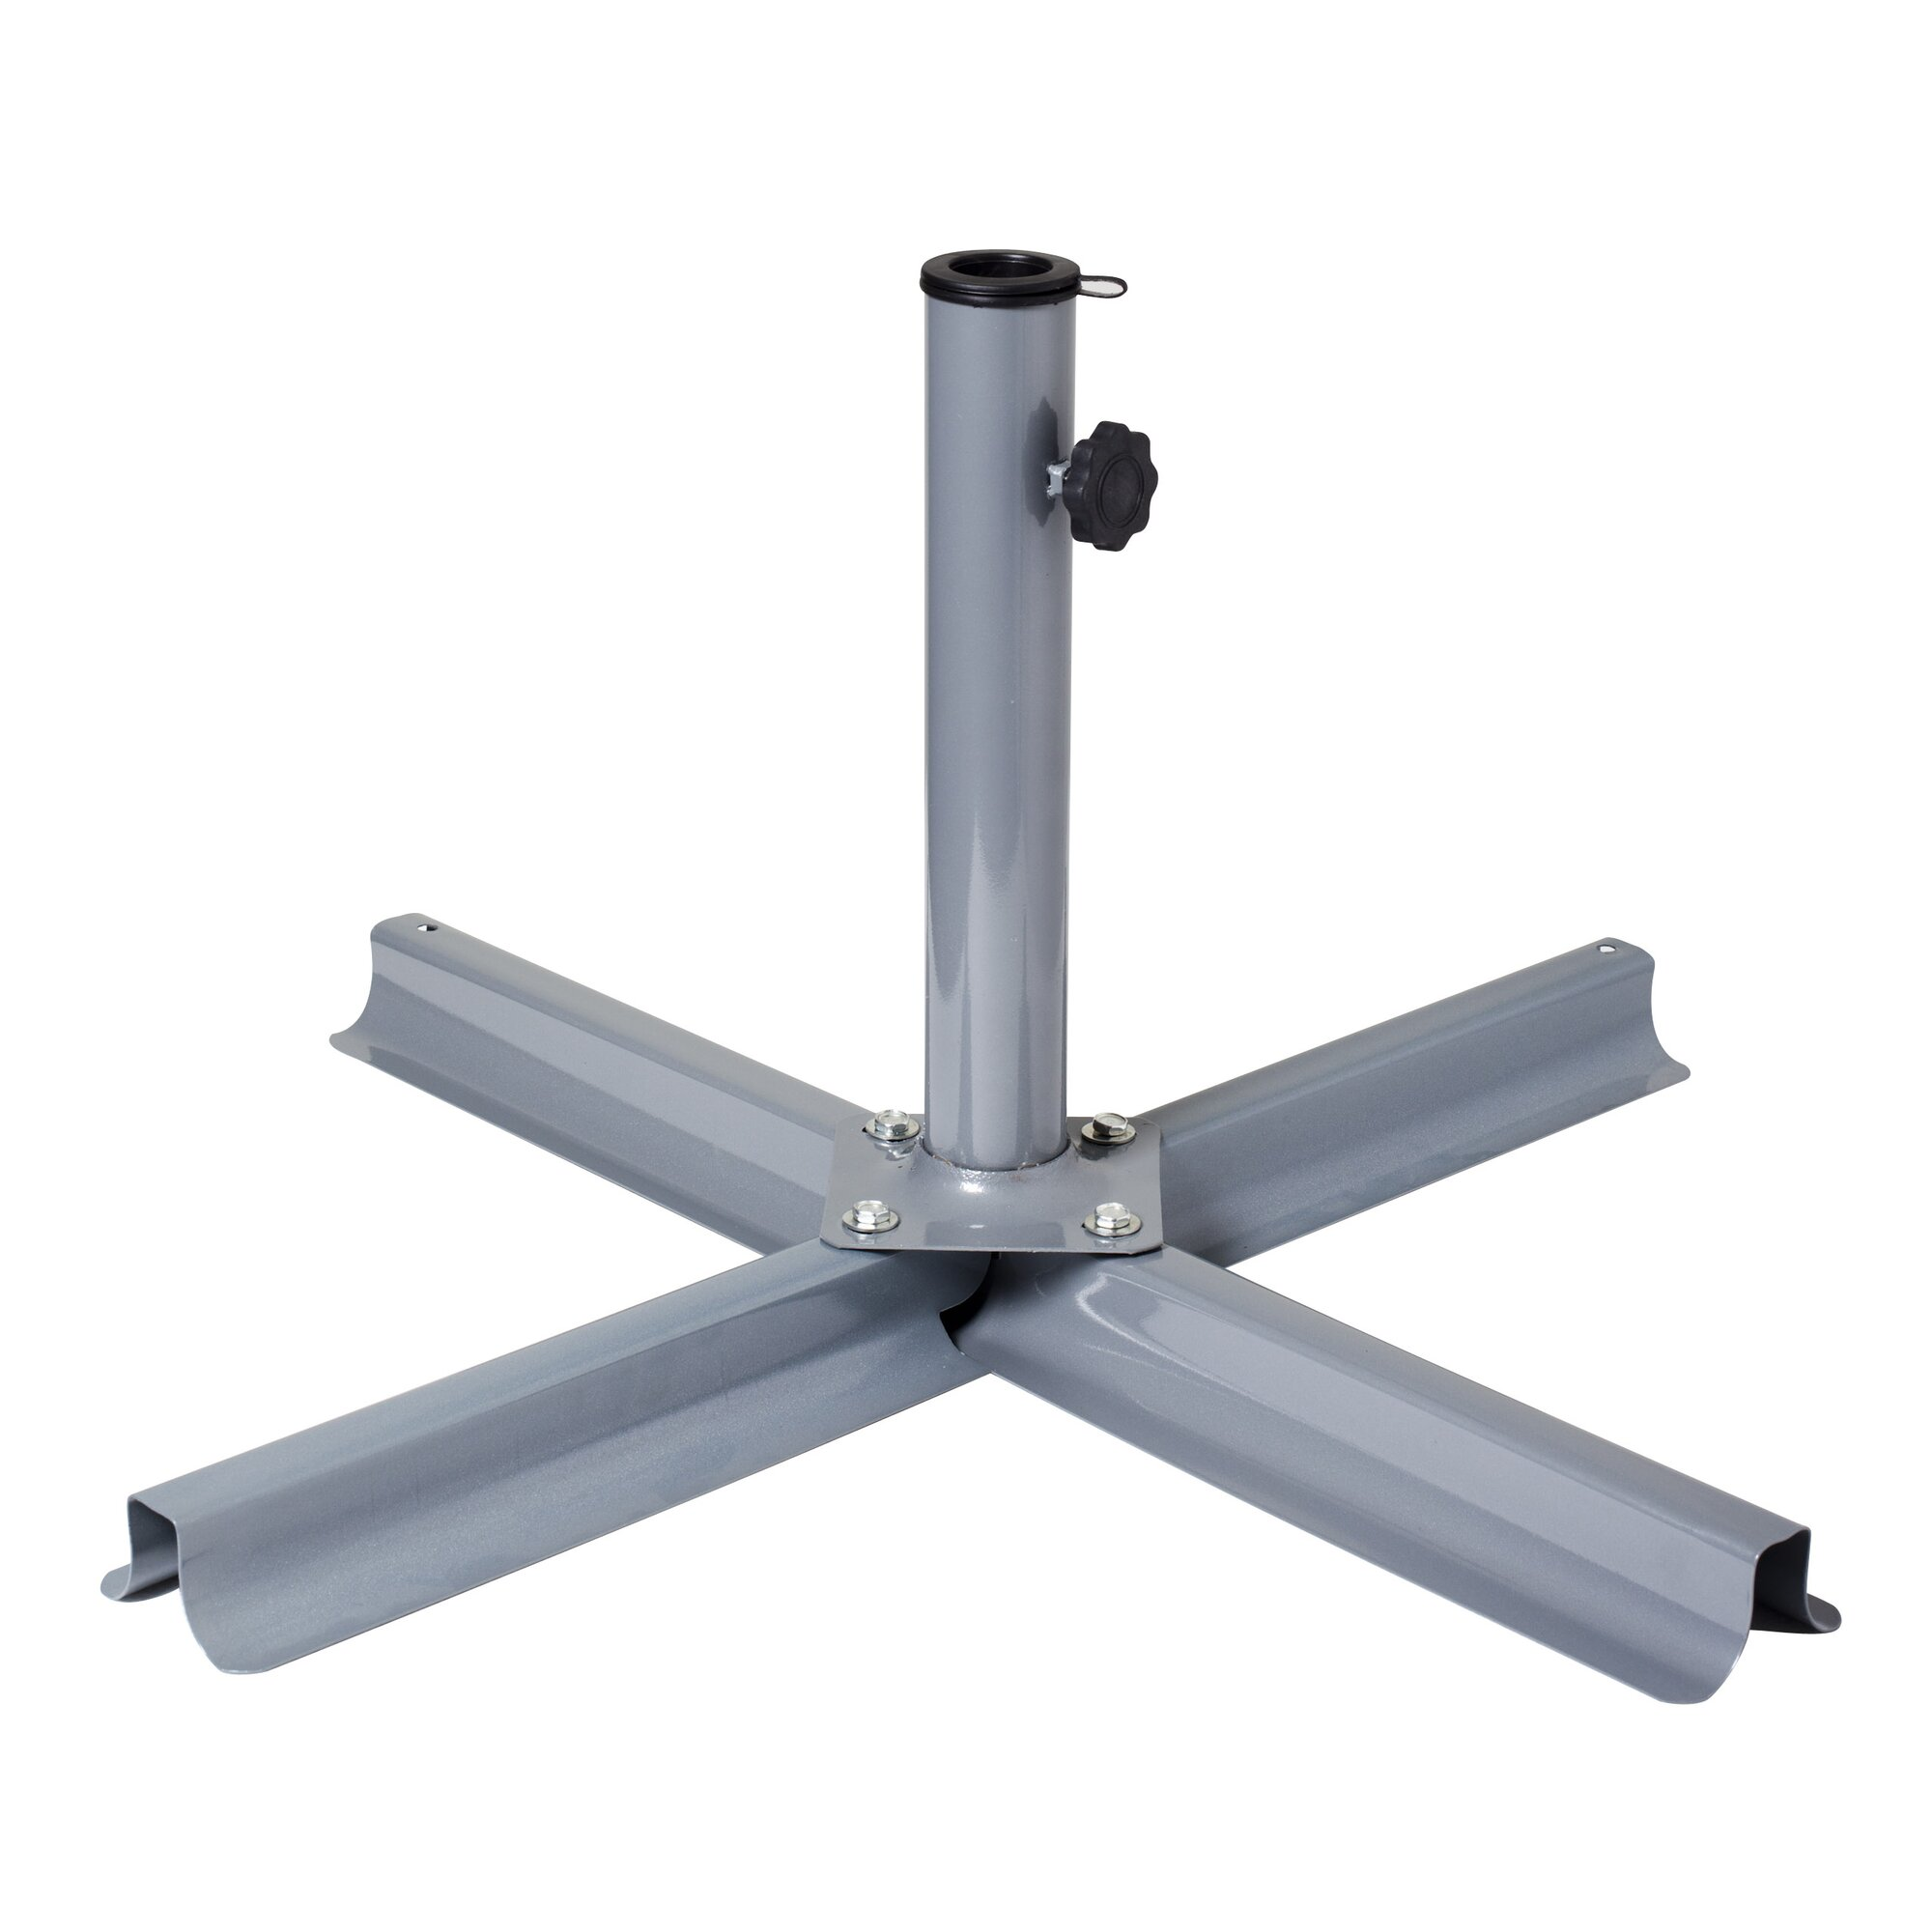 Umbrella Stand For Garden: CorLiving Patio Umbrella Stand & Reviews